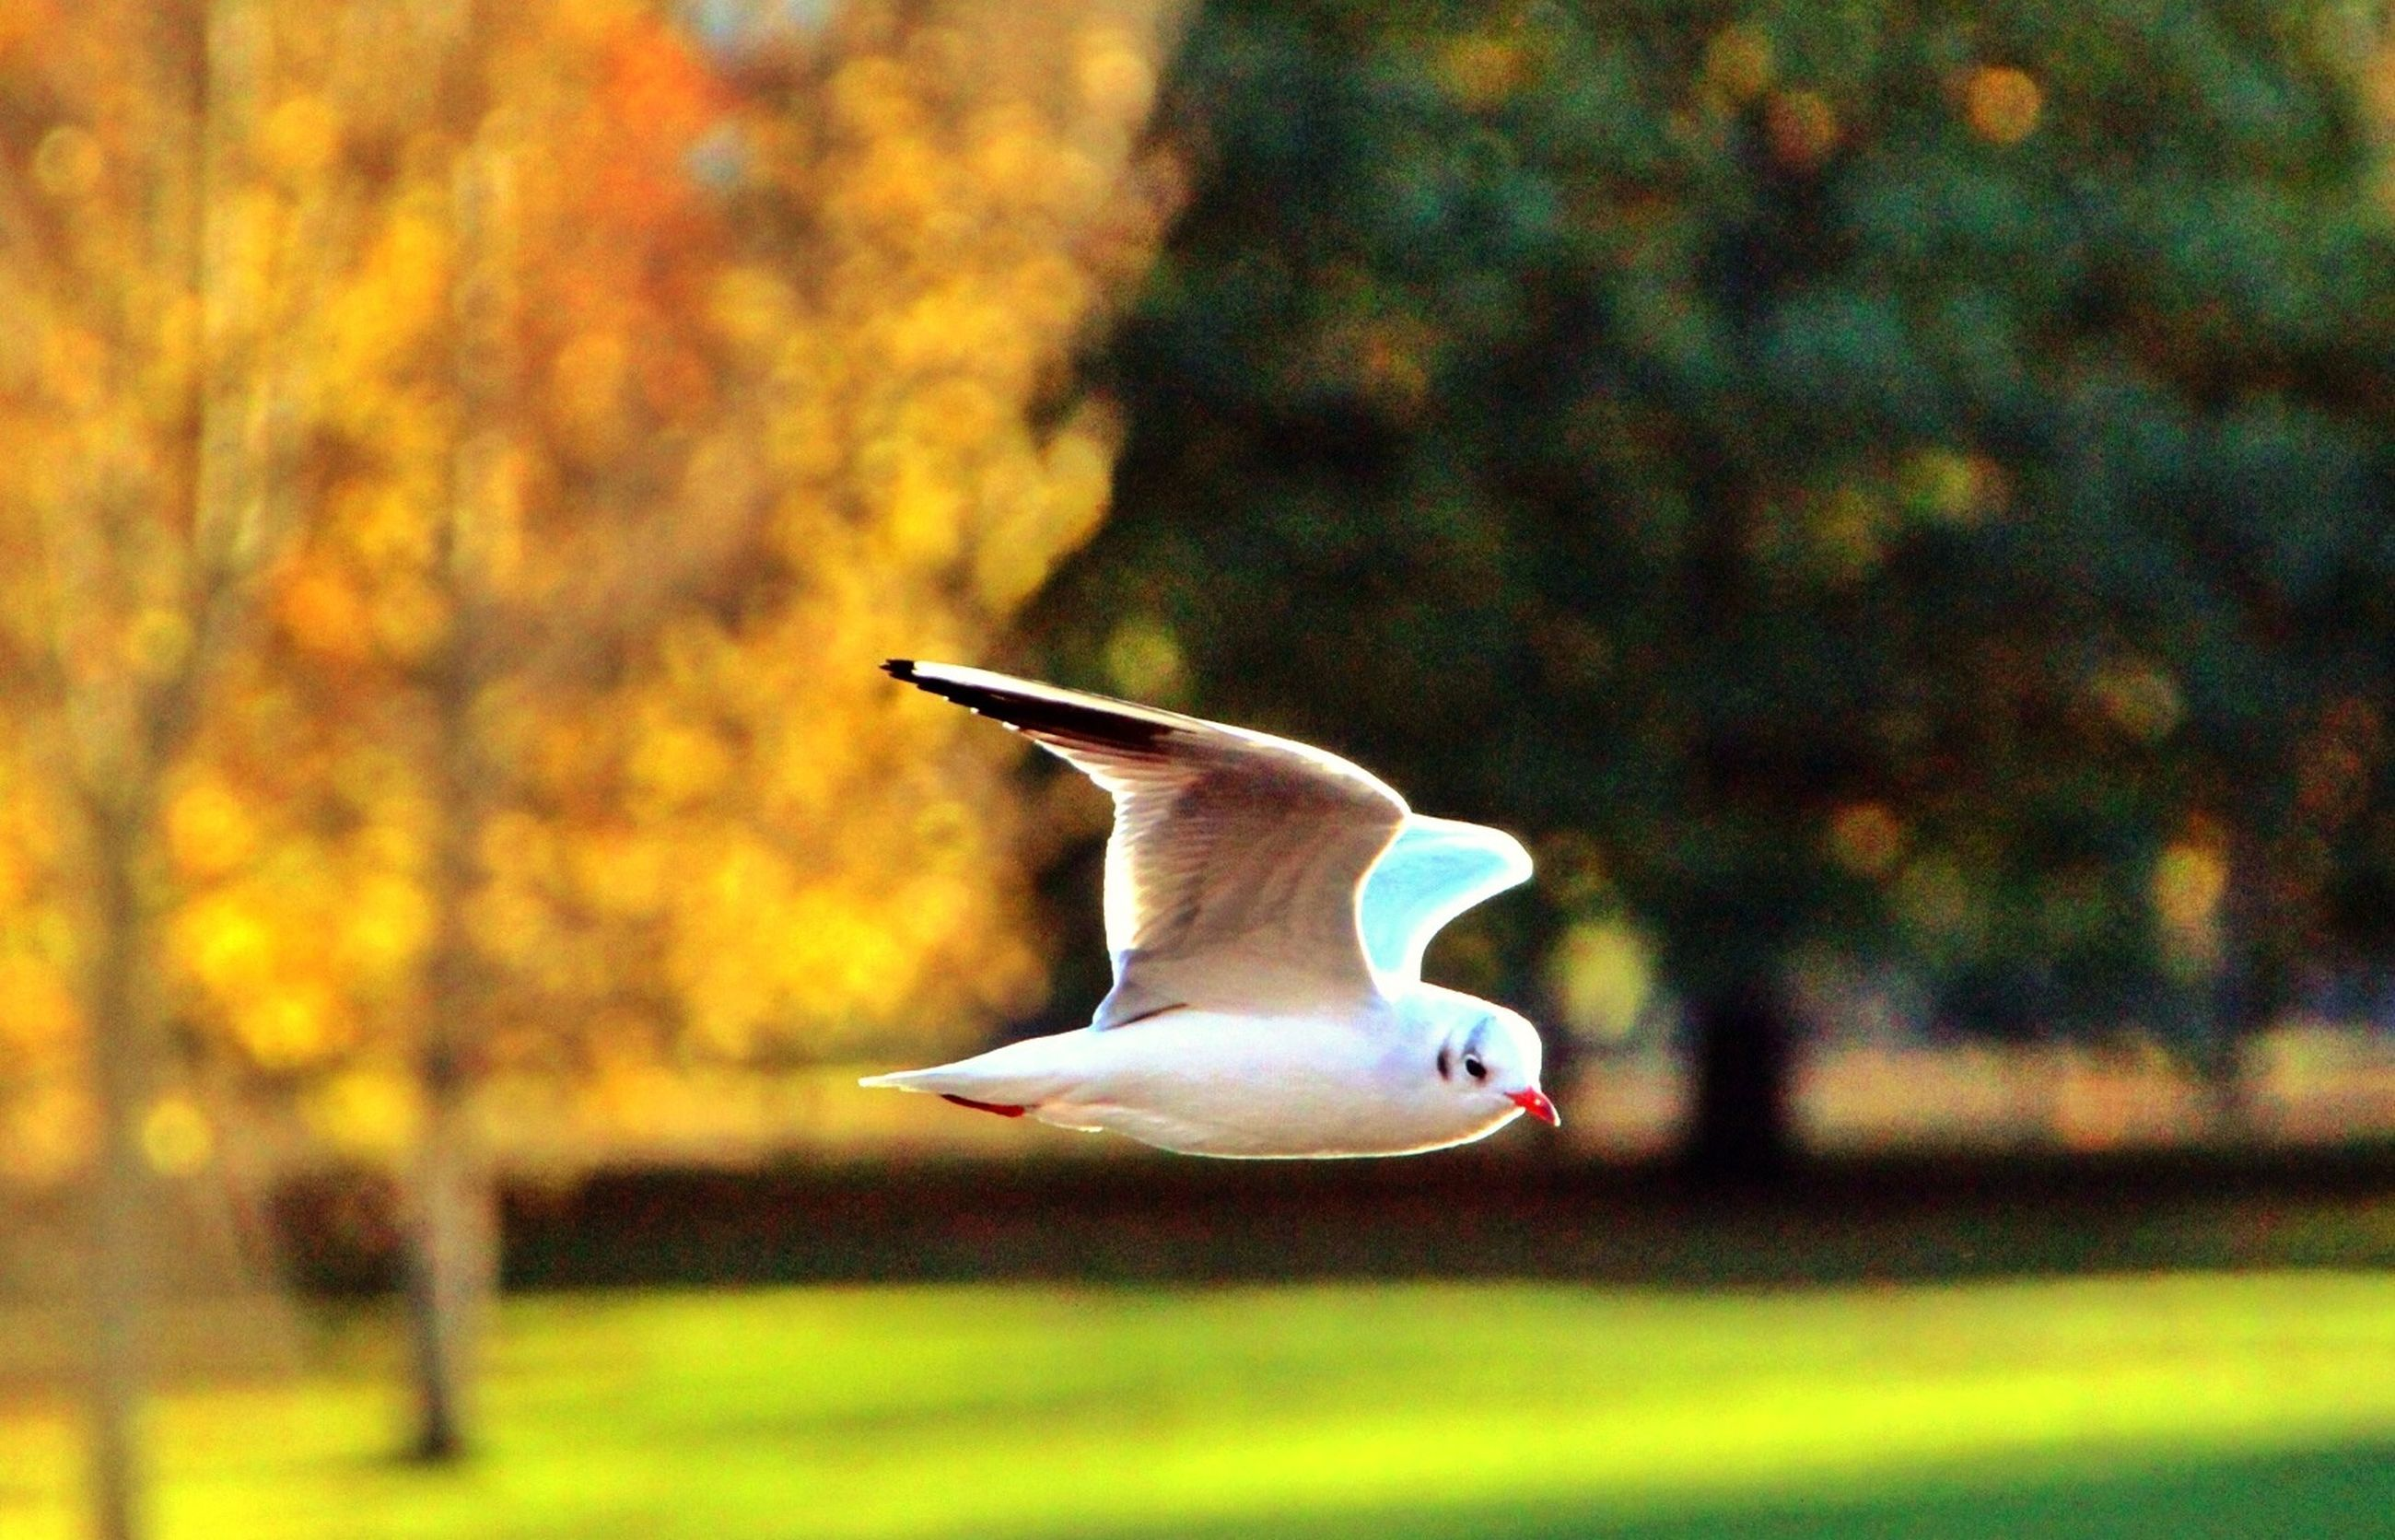 animal themes, bird, one animal, animals in the wild, wildlife, flying, focus on foreground, mid-air, seagull, spread wings, side view, nature, beak, full length, white color, selective focus, outdoors, field, close-up, no people